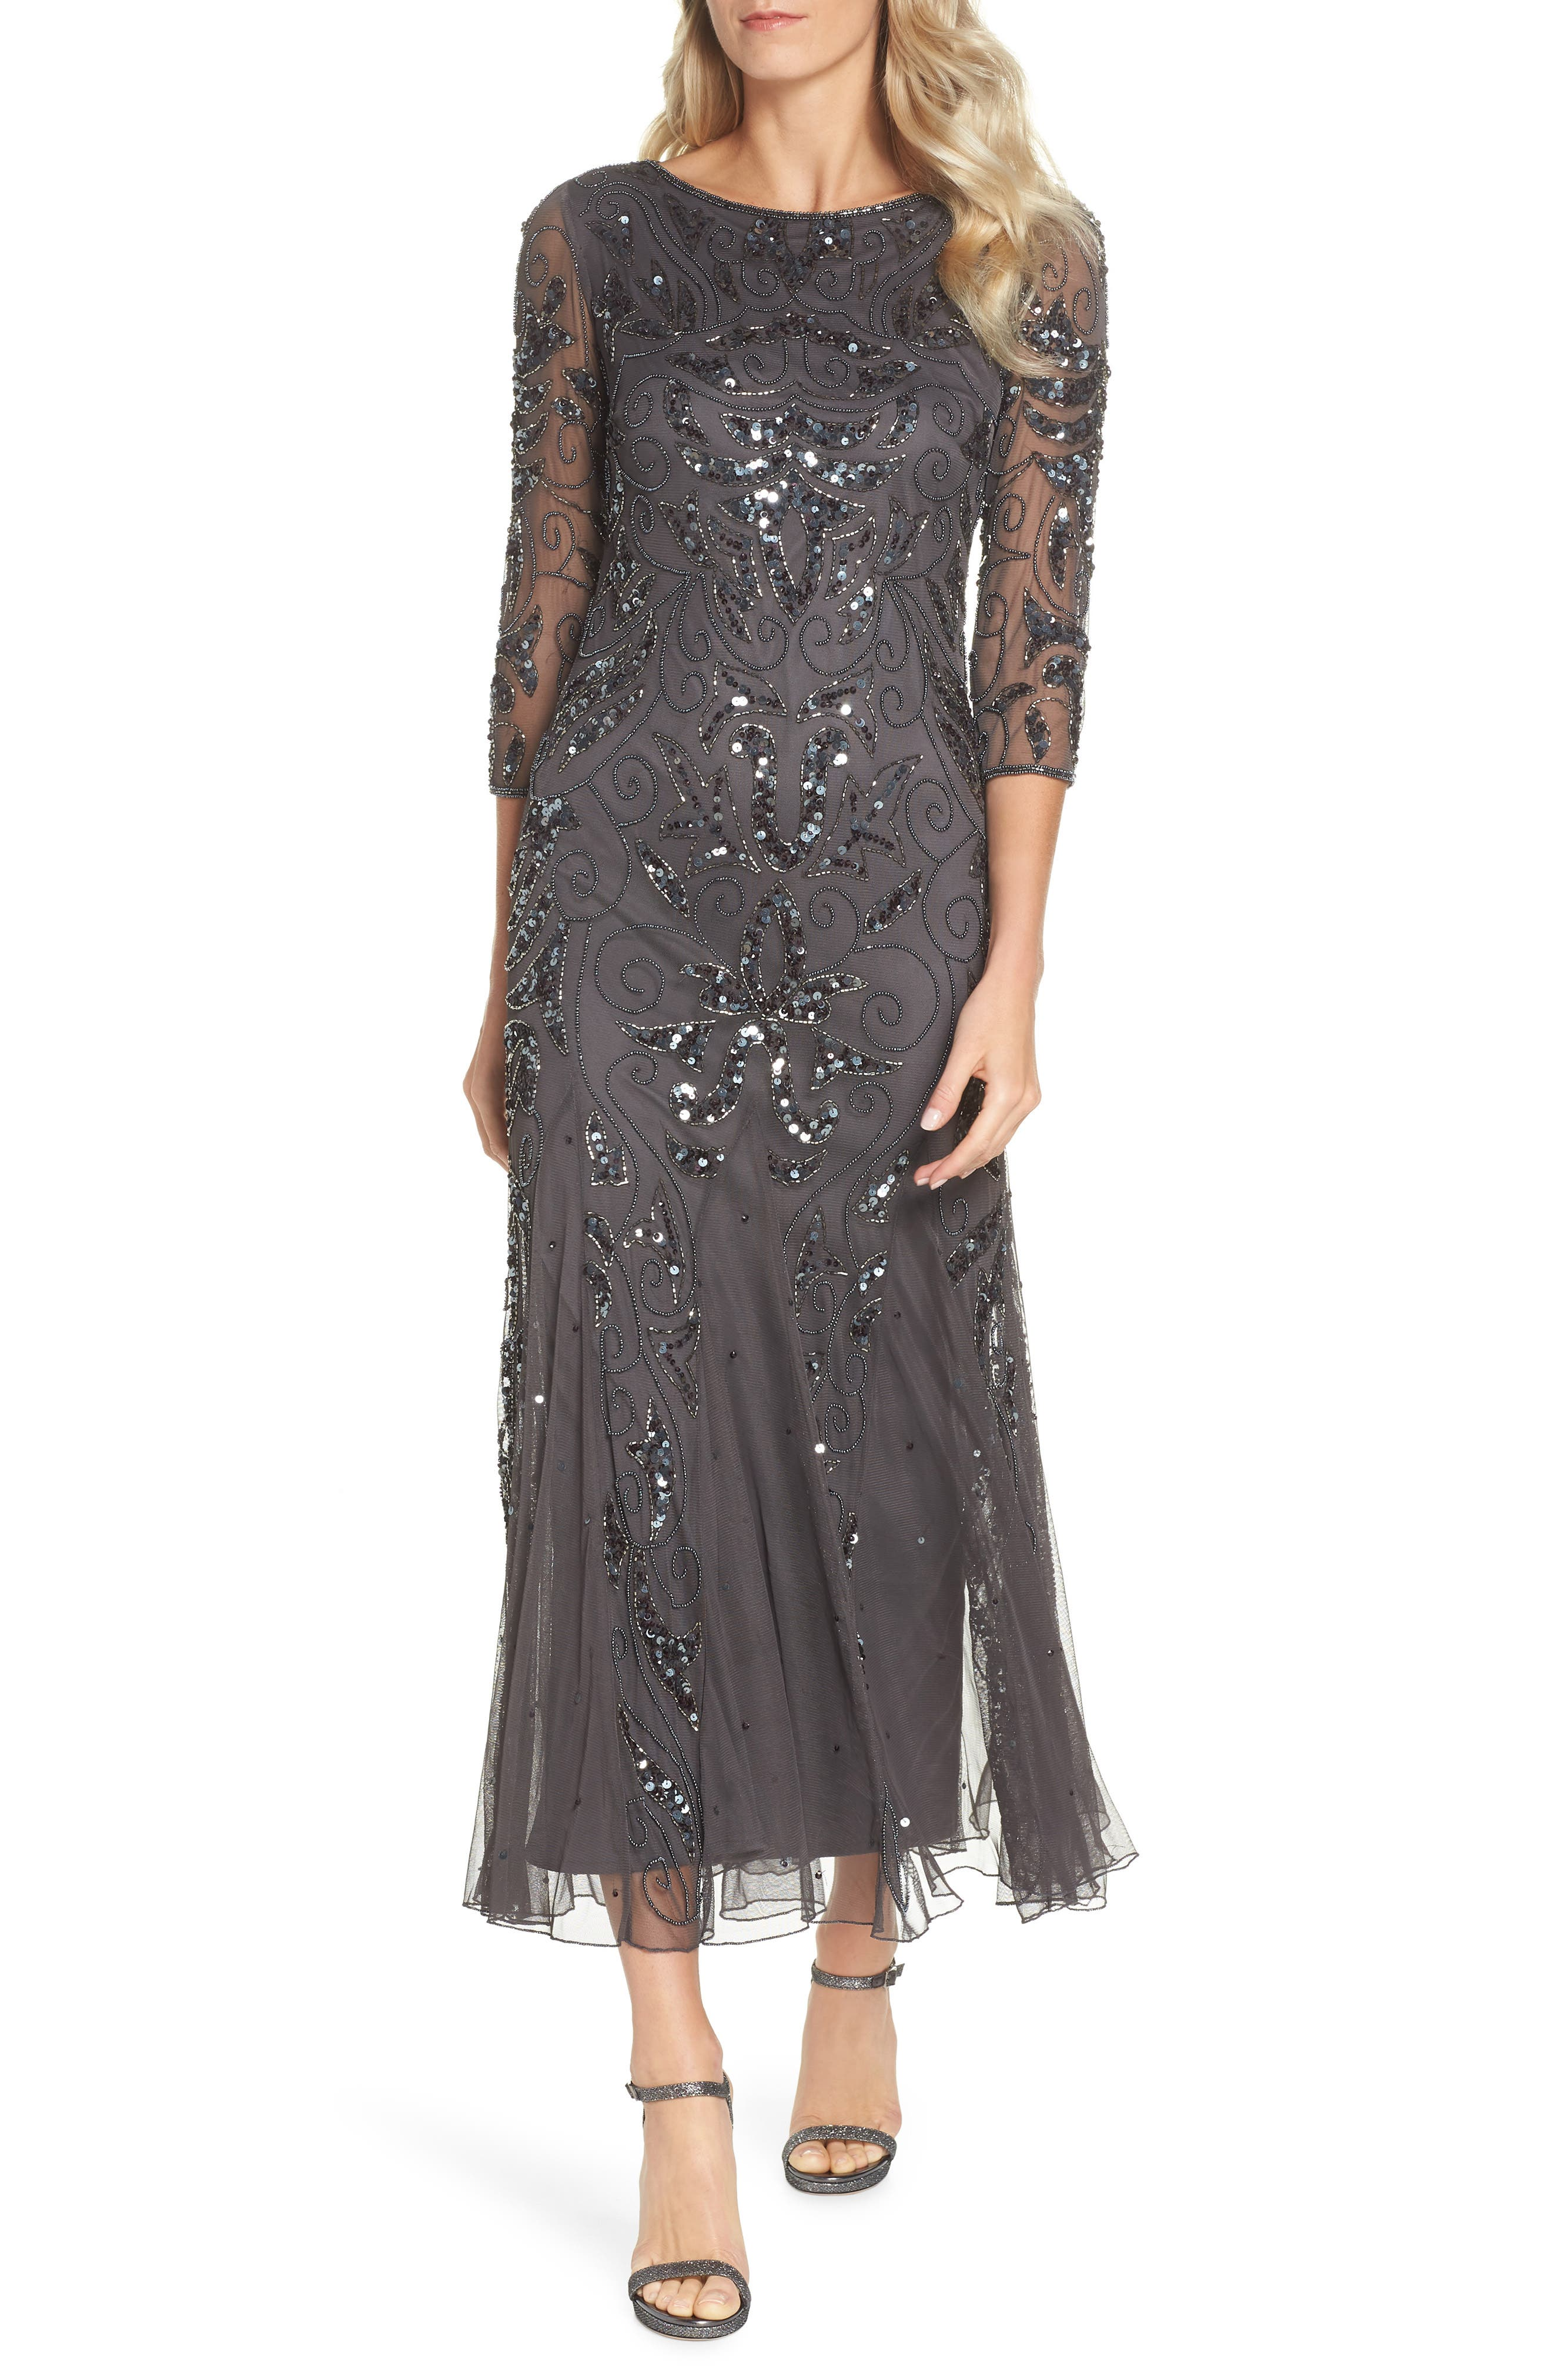 PISARRO NIGHTS, Embellished Mesh Gown, Main thumbnail 1, color, NEW ASH